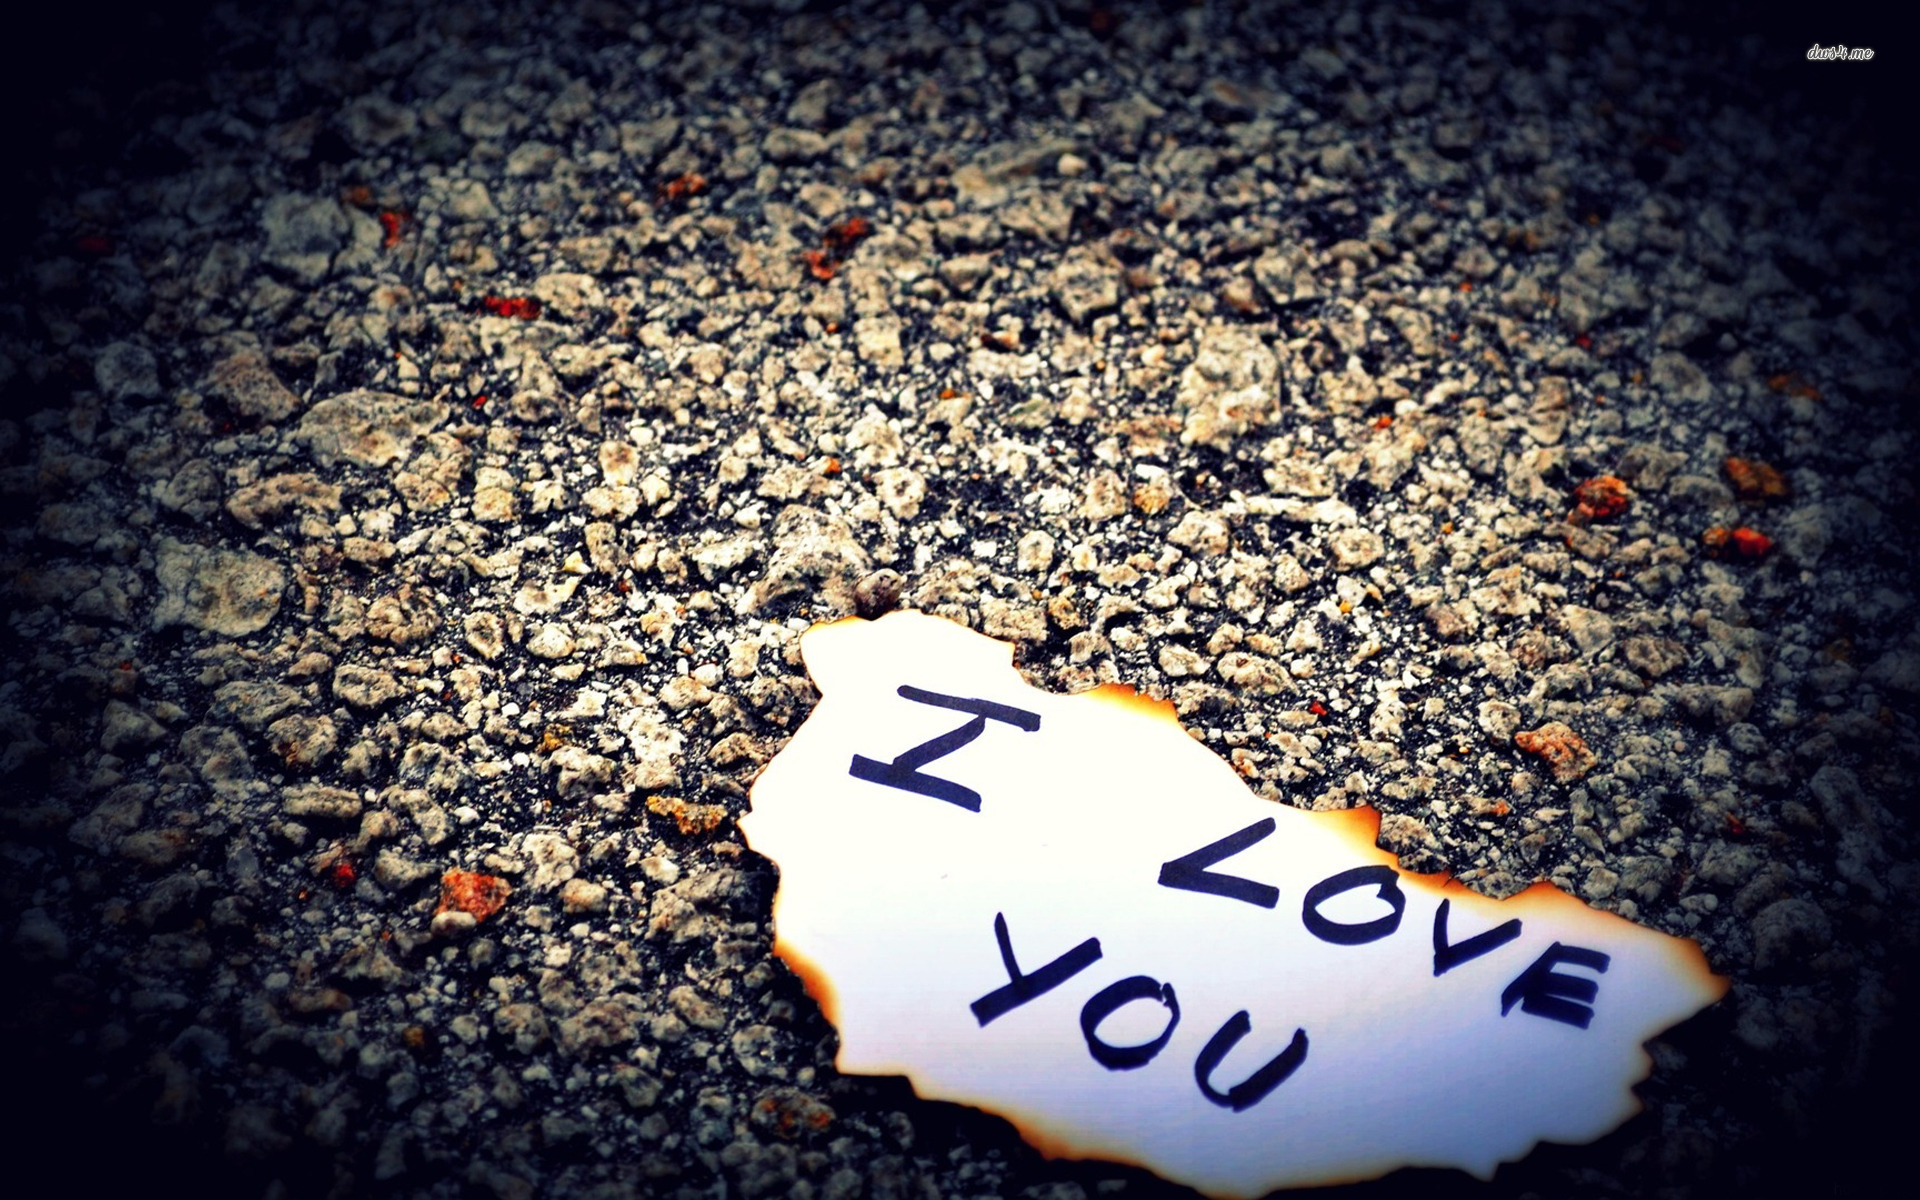 I Love You Wallpapers HD A2